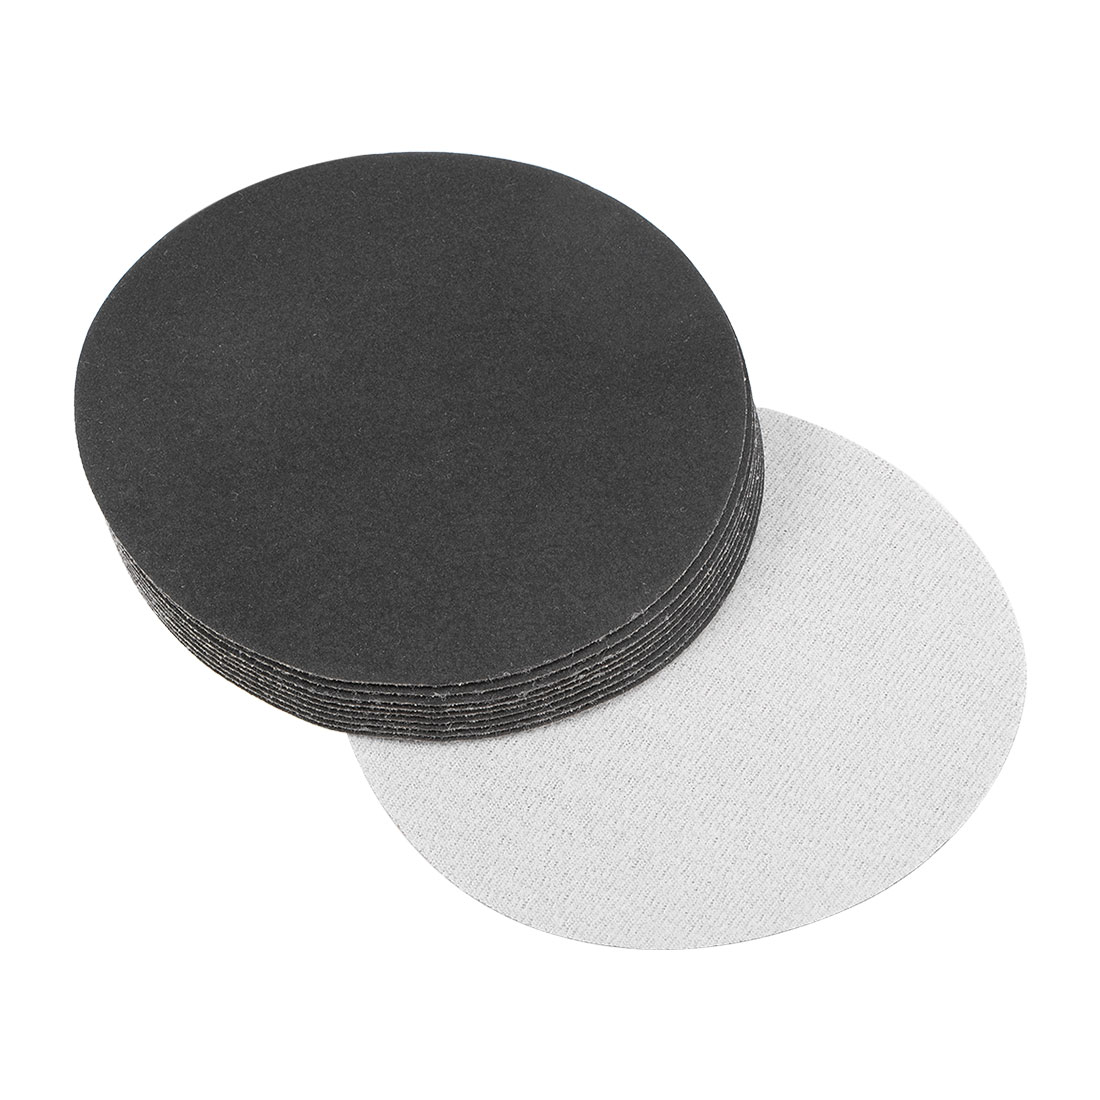 5 inch Wet Dry Discs 320 Grit Hook and Loop Sanding Disc Silicon Carbide 10pcs